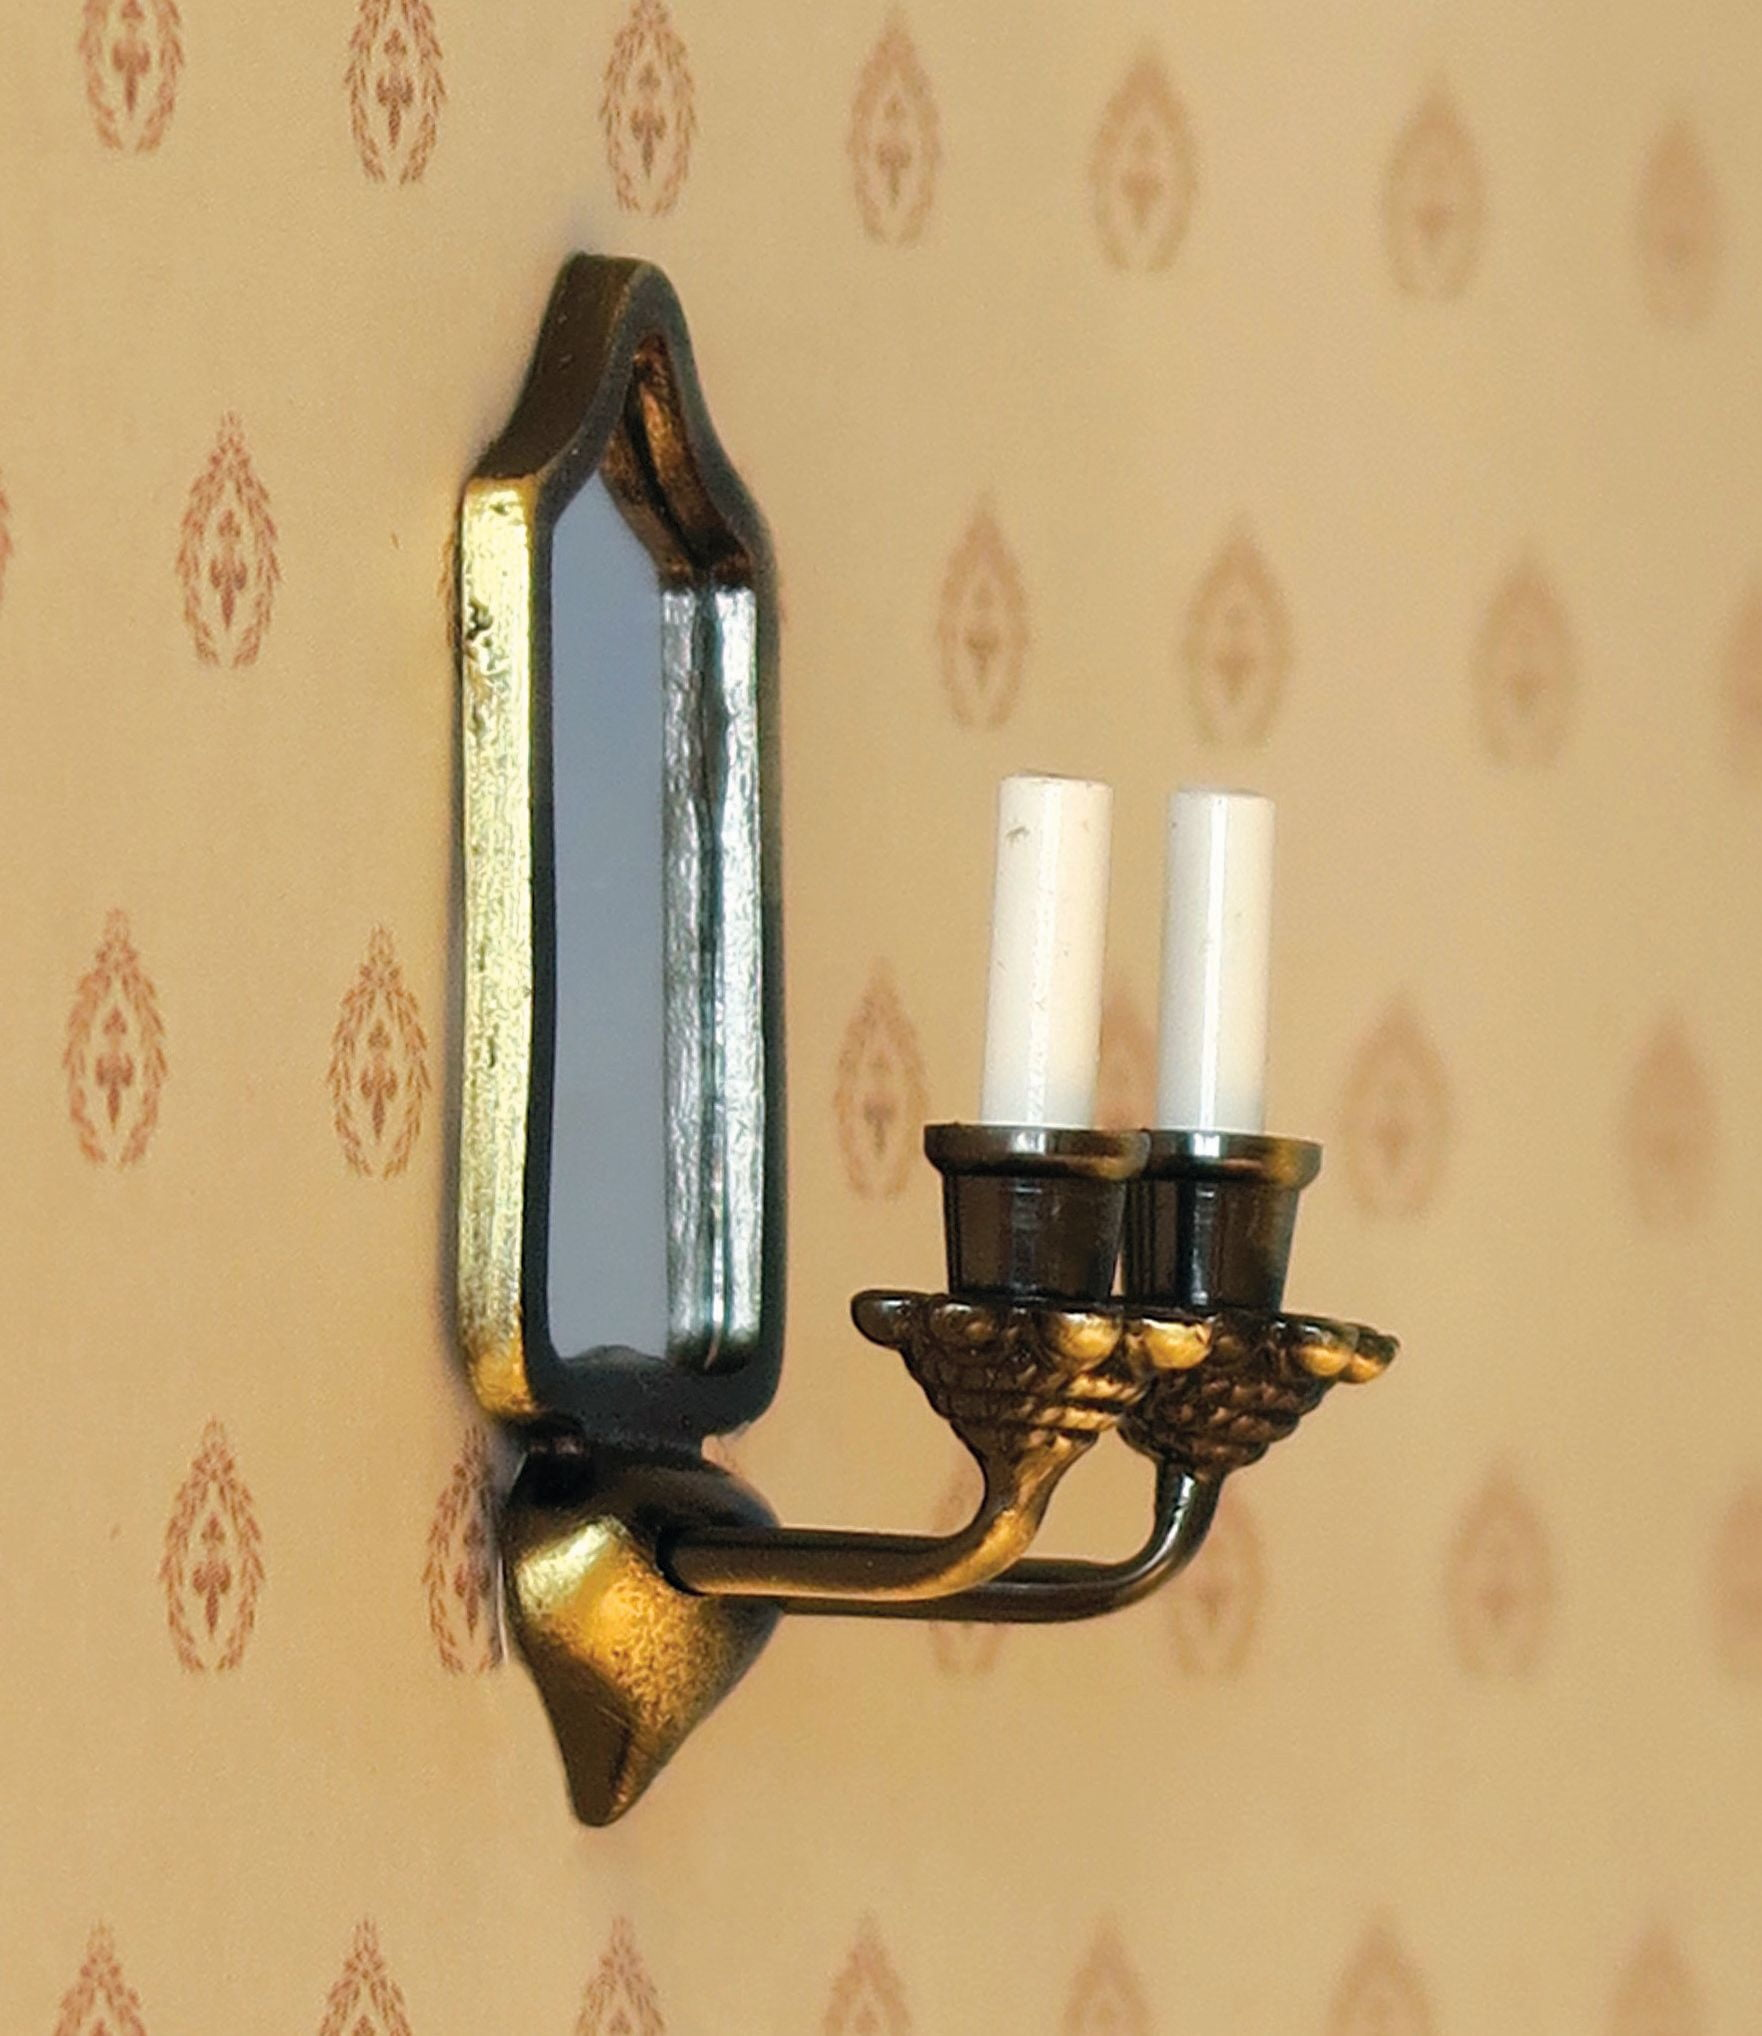 Mirror Wall Candle Sconce 12v 12th Scale For Dolls House Hobbies